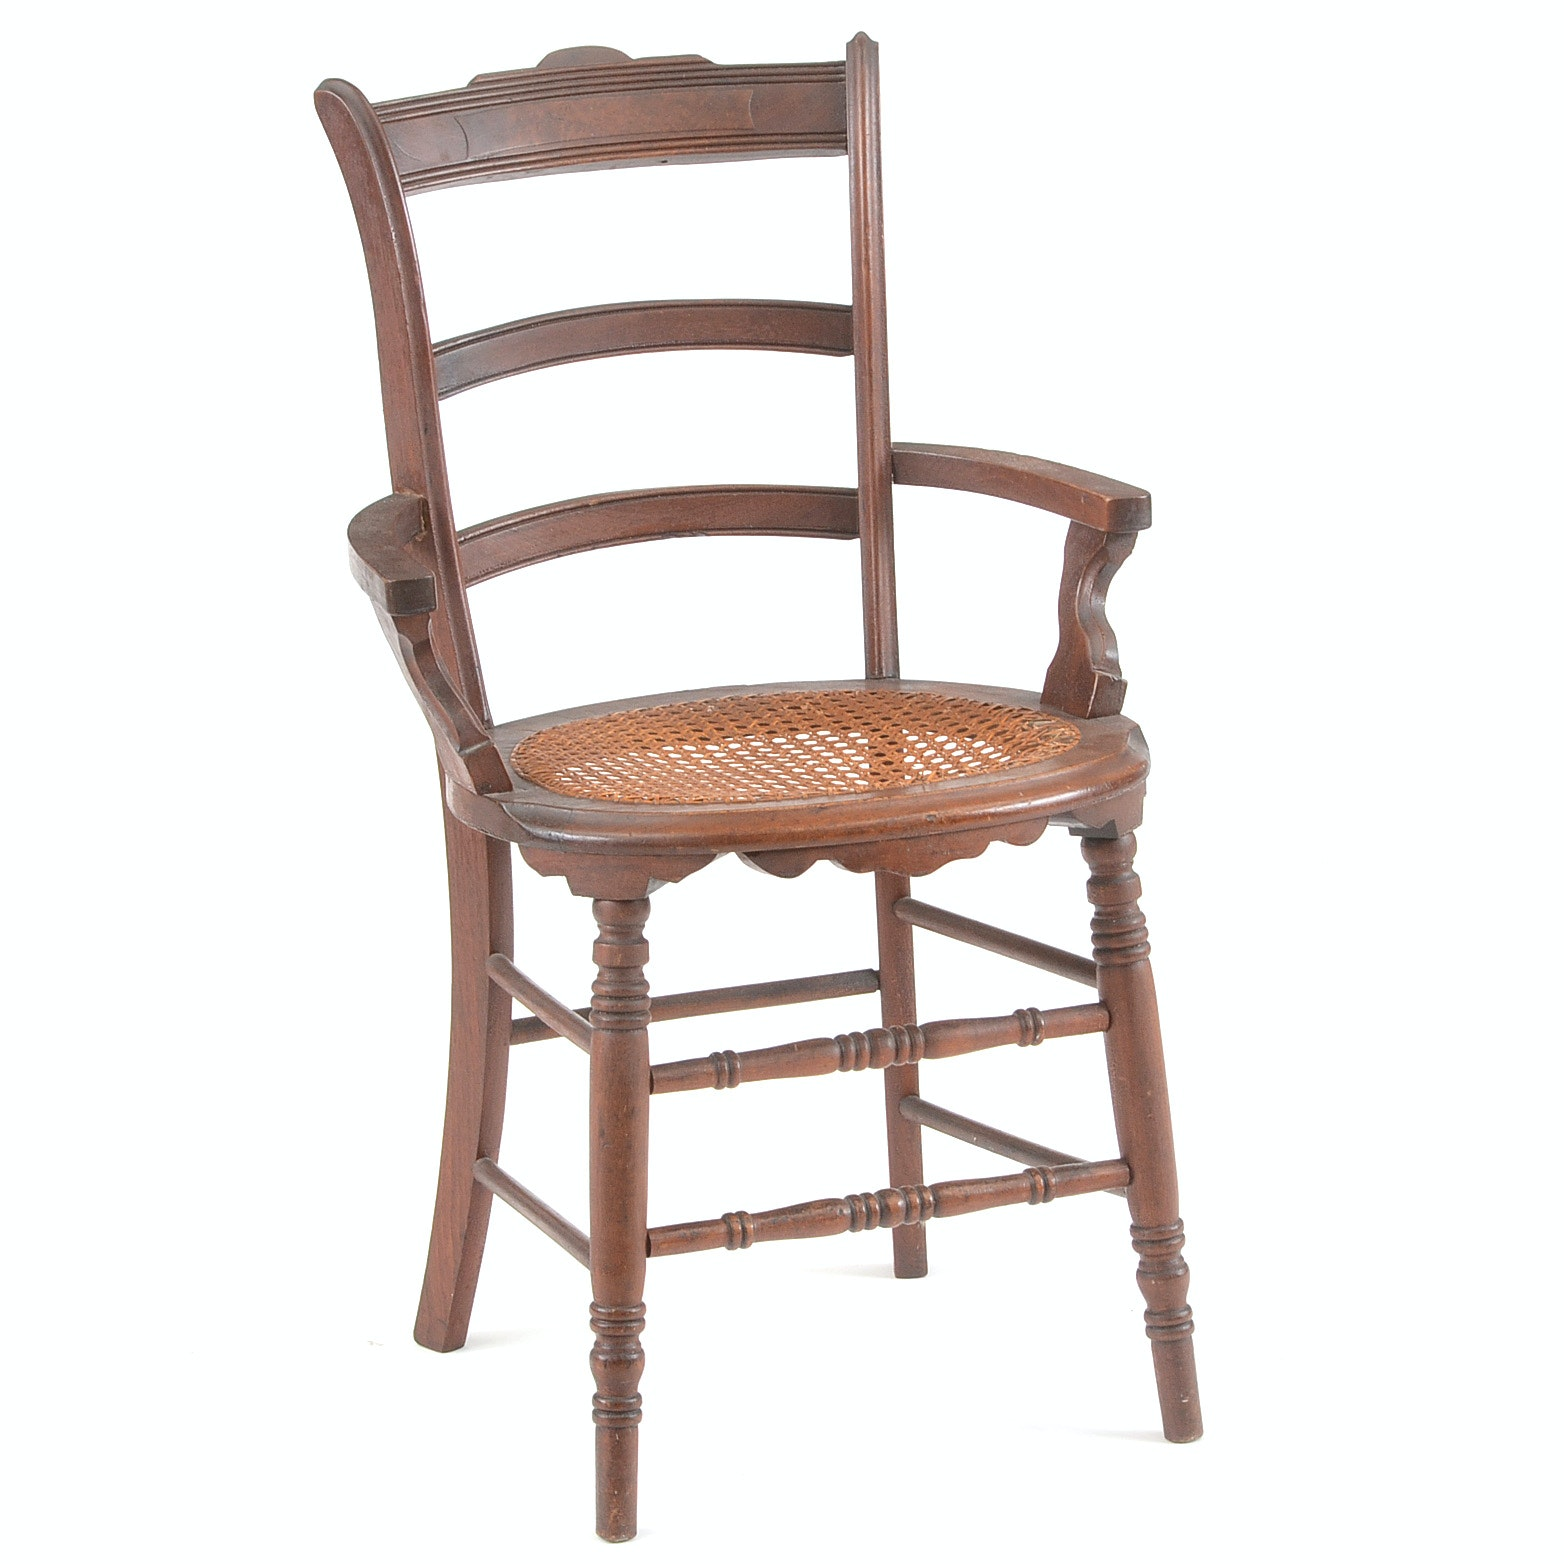 Antique Walnut Caned Arm Chair